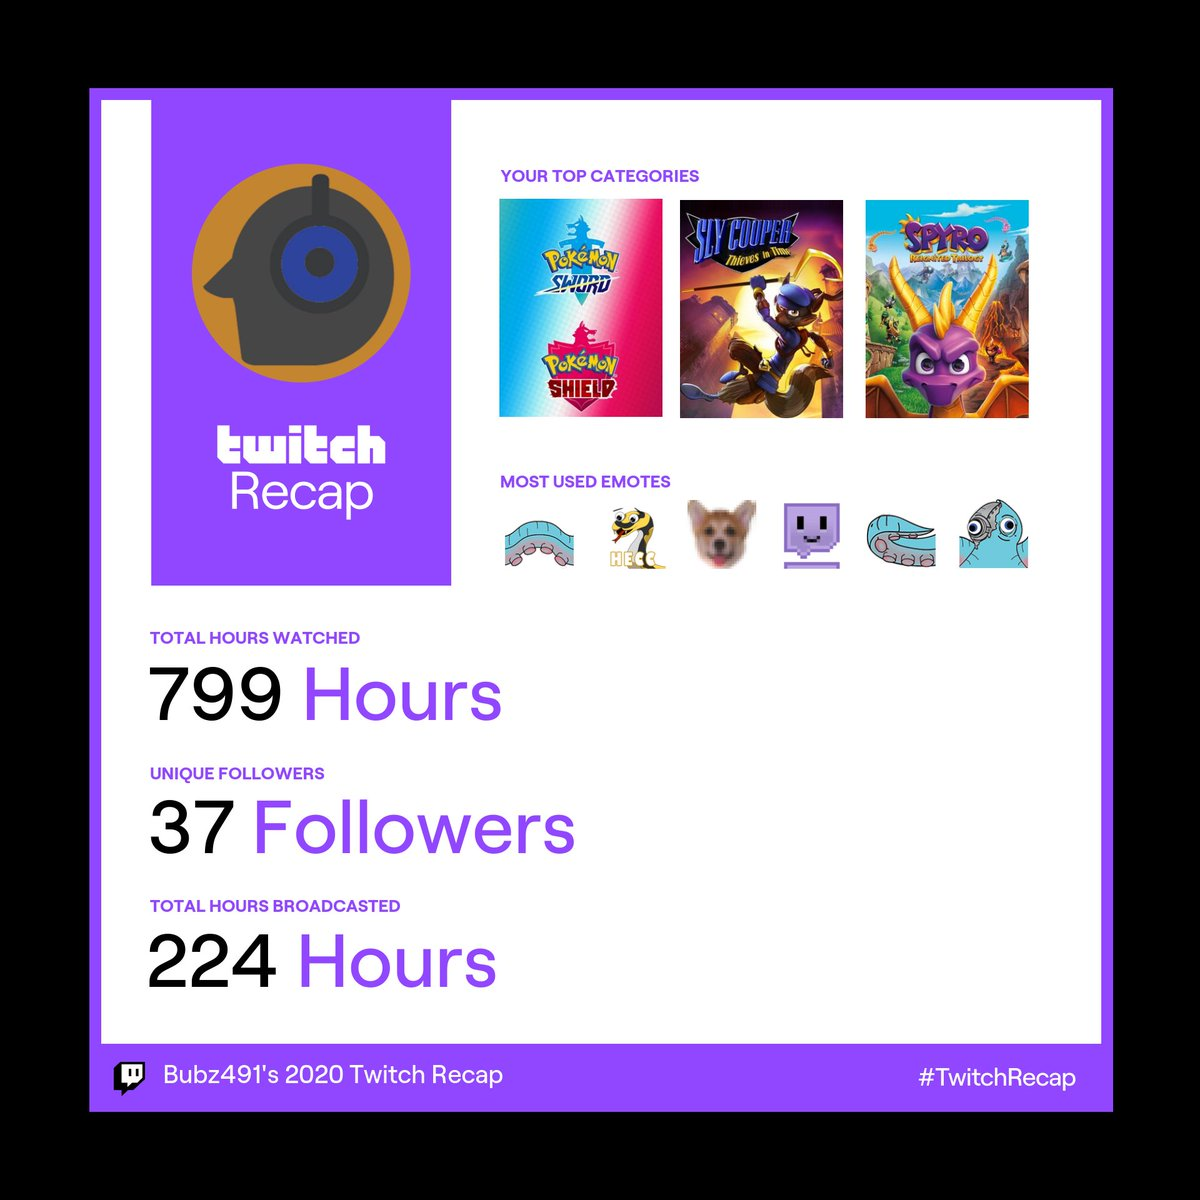 Thank you everyone who made this last year as good as it could be all things considered. I'm looking forward to growing more in the next year. #TwitchRecap2020 #TwitchRecap